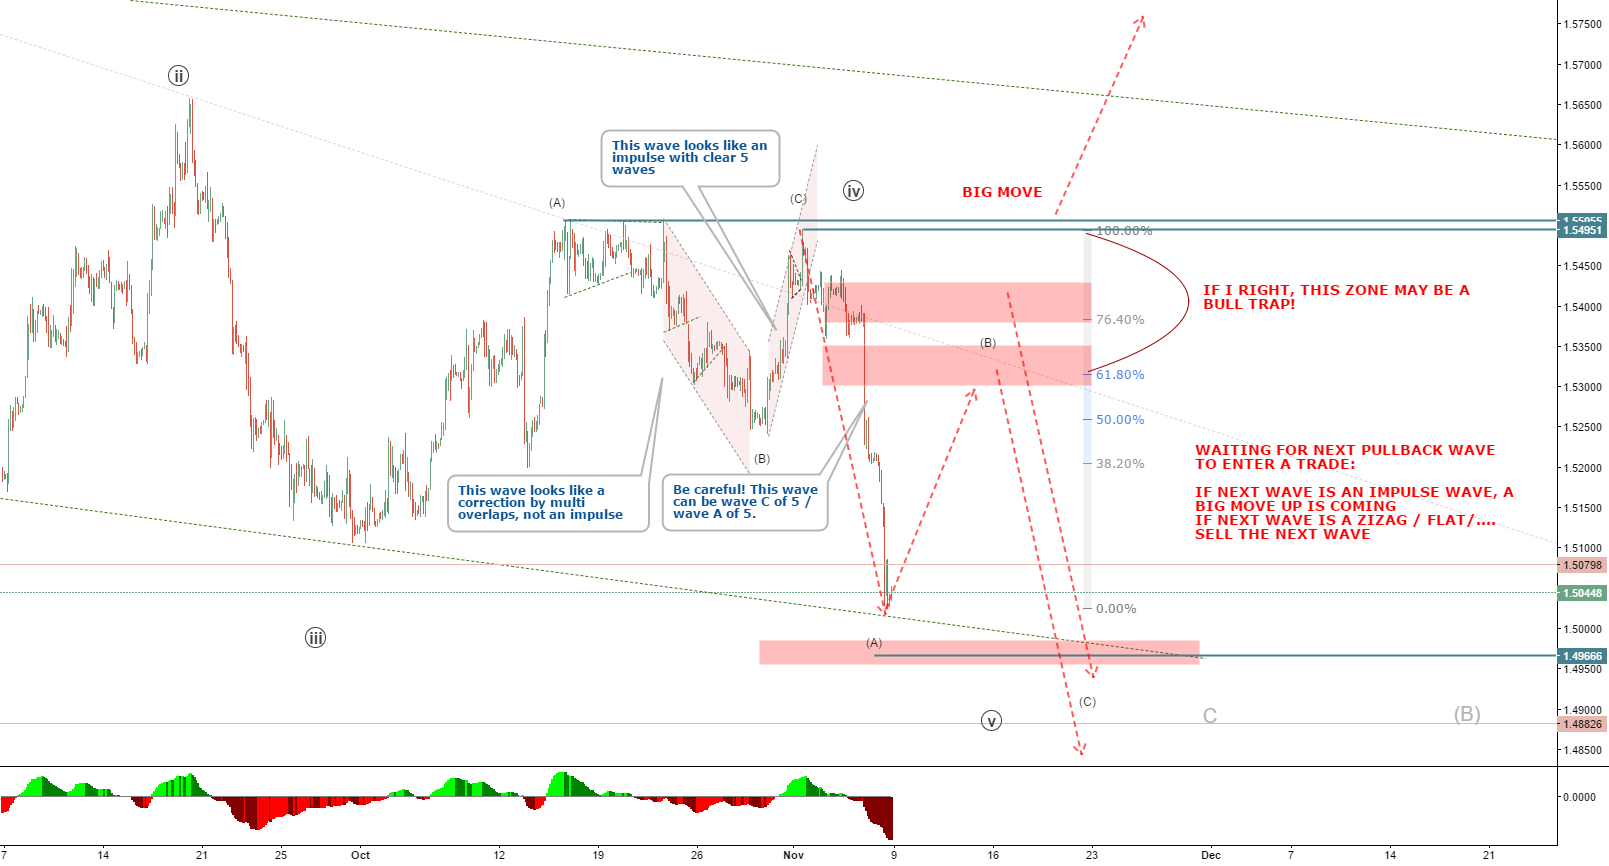 GBPUSD: Waiting for the next wave to know buy or sell